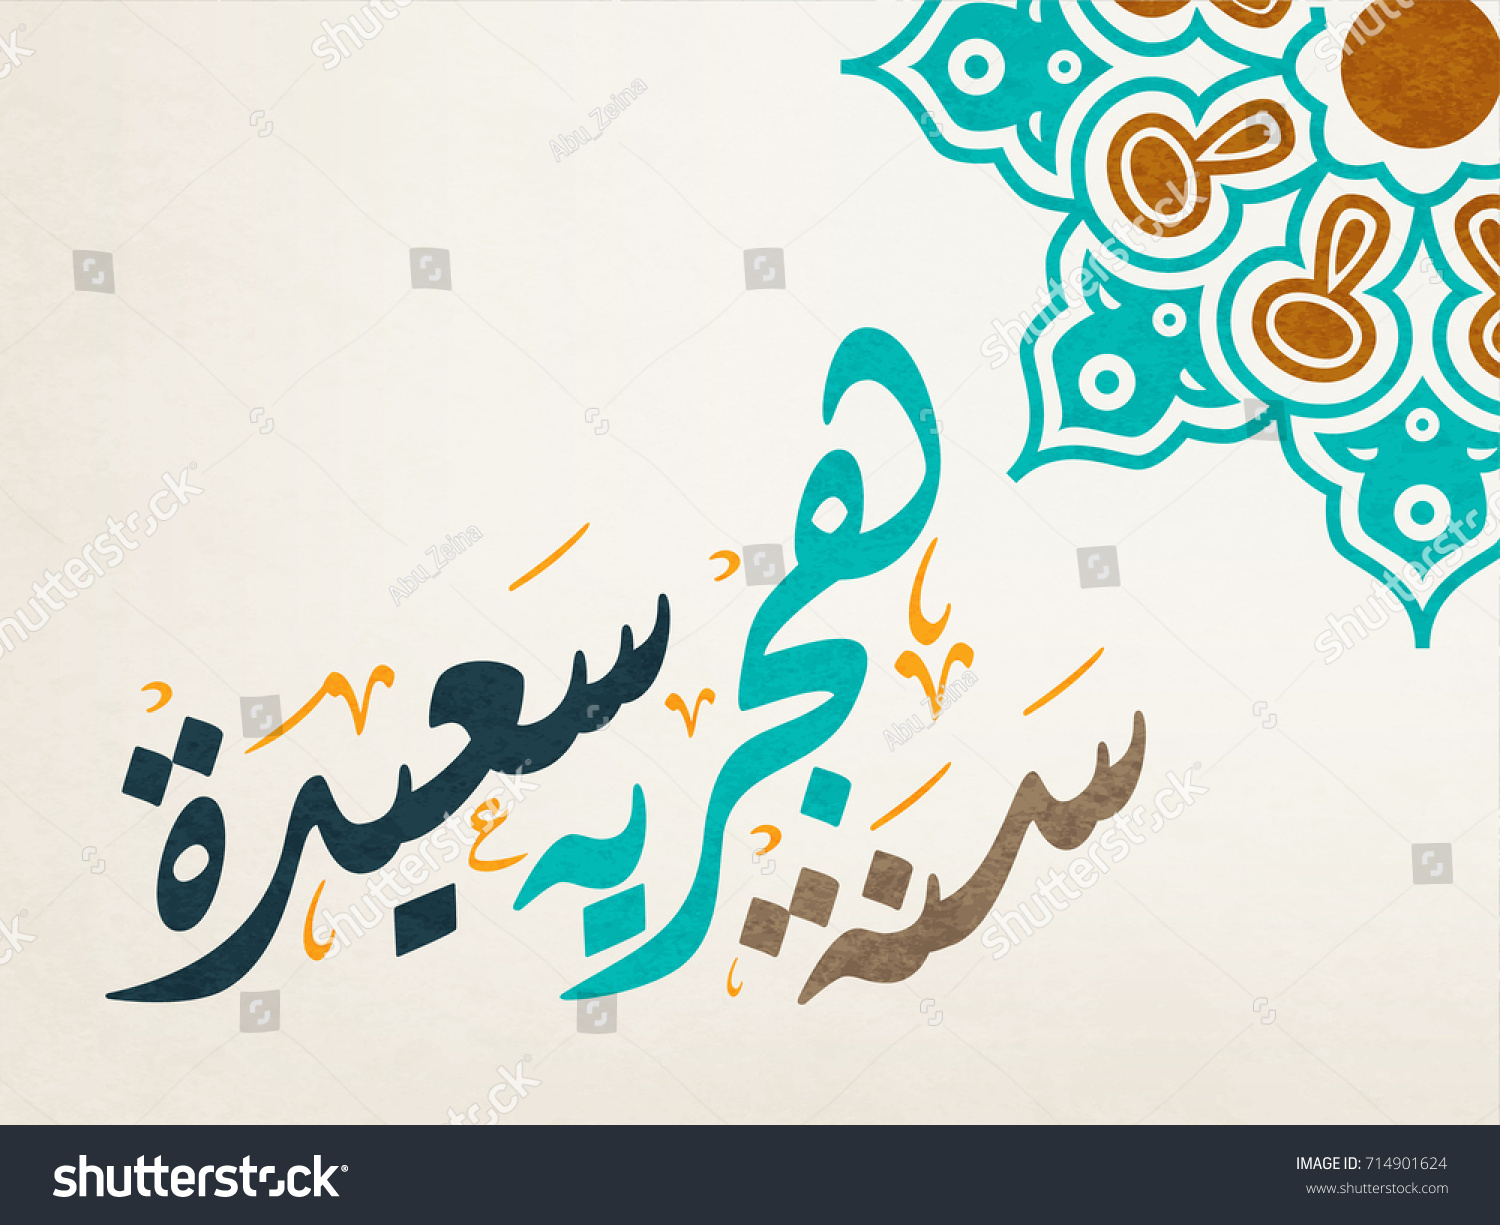 Happy new islamic year blessed hijri stock vector 714901624 happy new islamic year blessed hijri new year in arabic calligraphy type vintage background kristyandbryce Choice Image